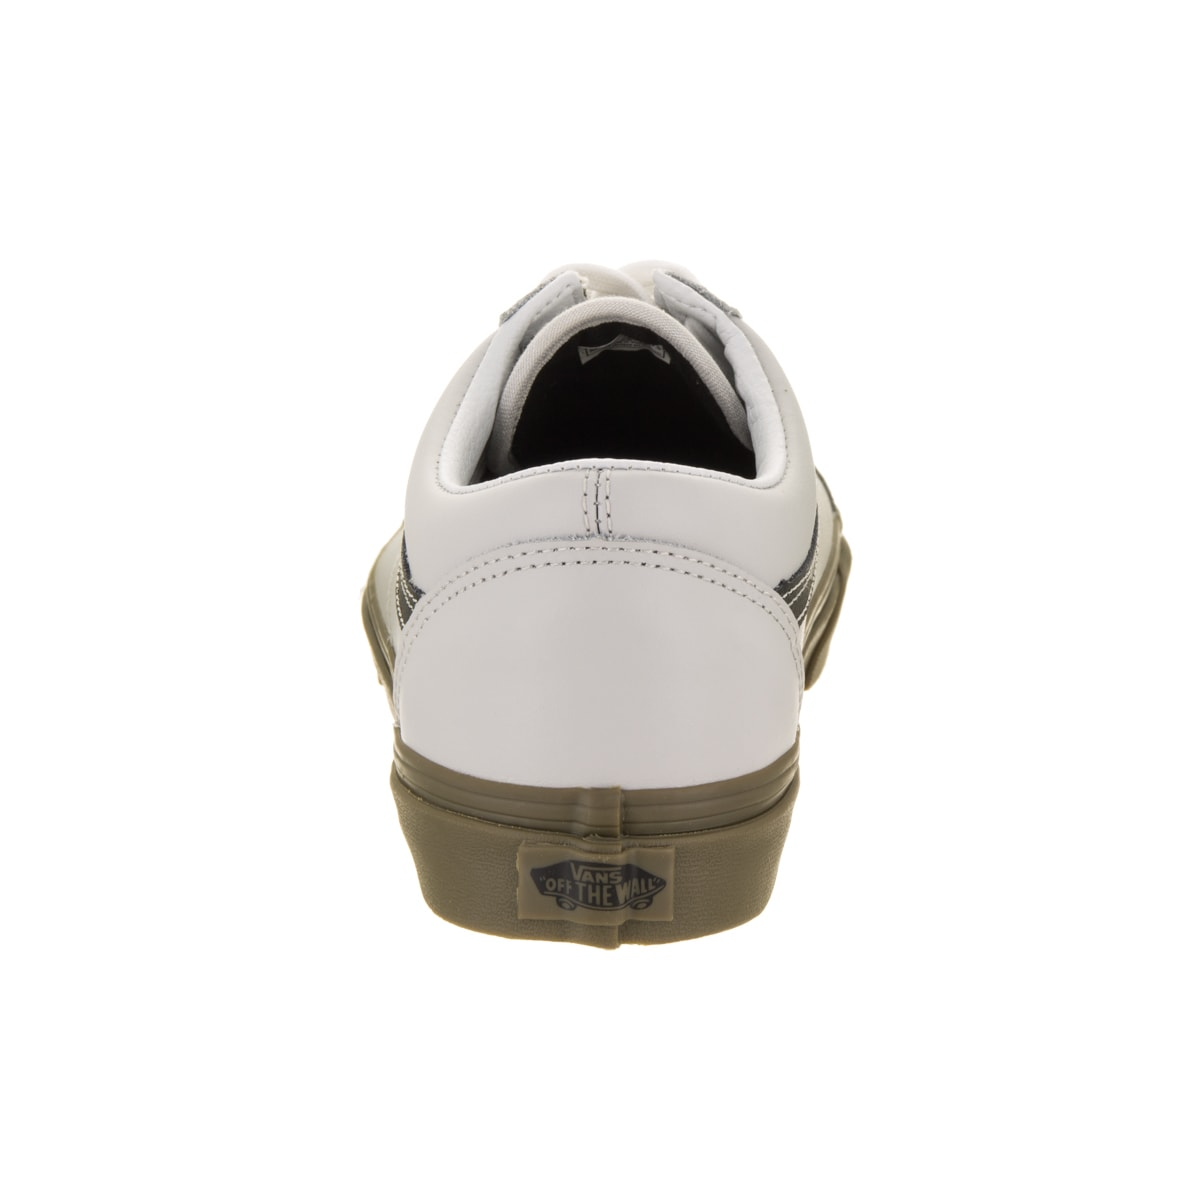 7ed78d30d9c6d5 Shop Vans Unisex Old Skool (Bleacher) Skate Shoe - Free Shipping Today -  Overstock - 16939930